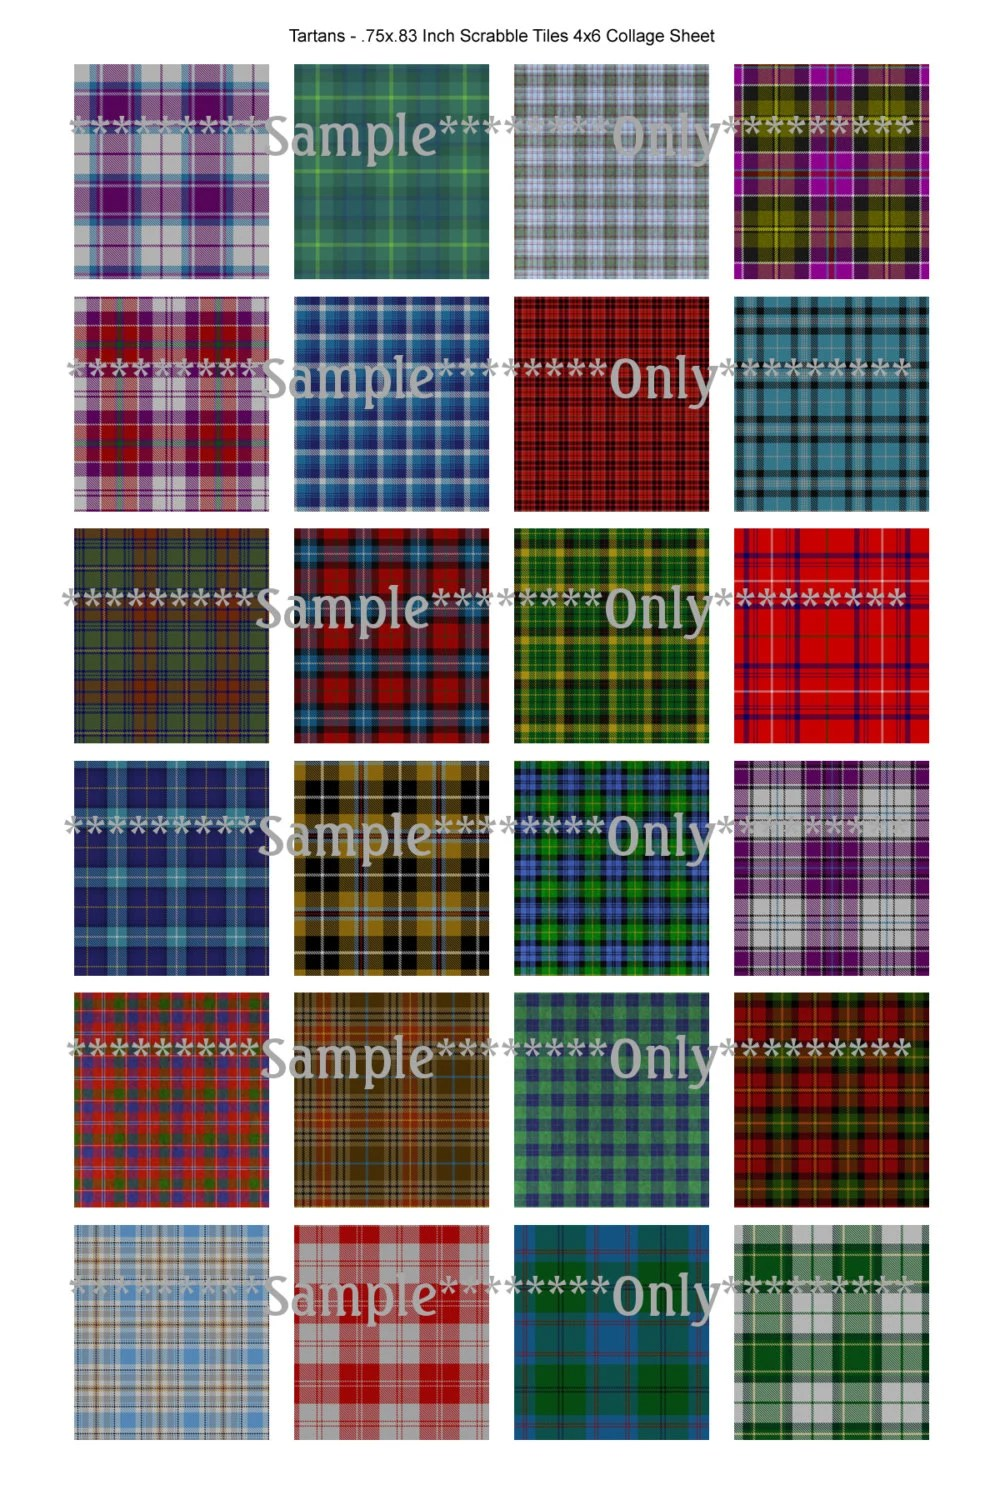 Tartan Plaid Collage Scrabble Tile 2 Digital Image Sheets